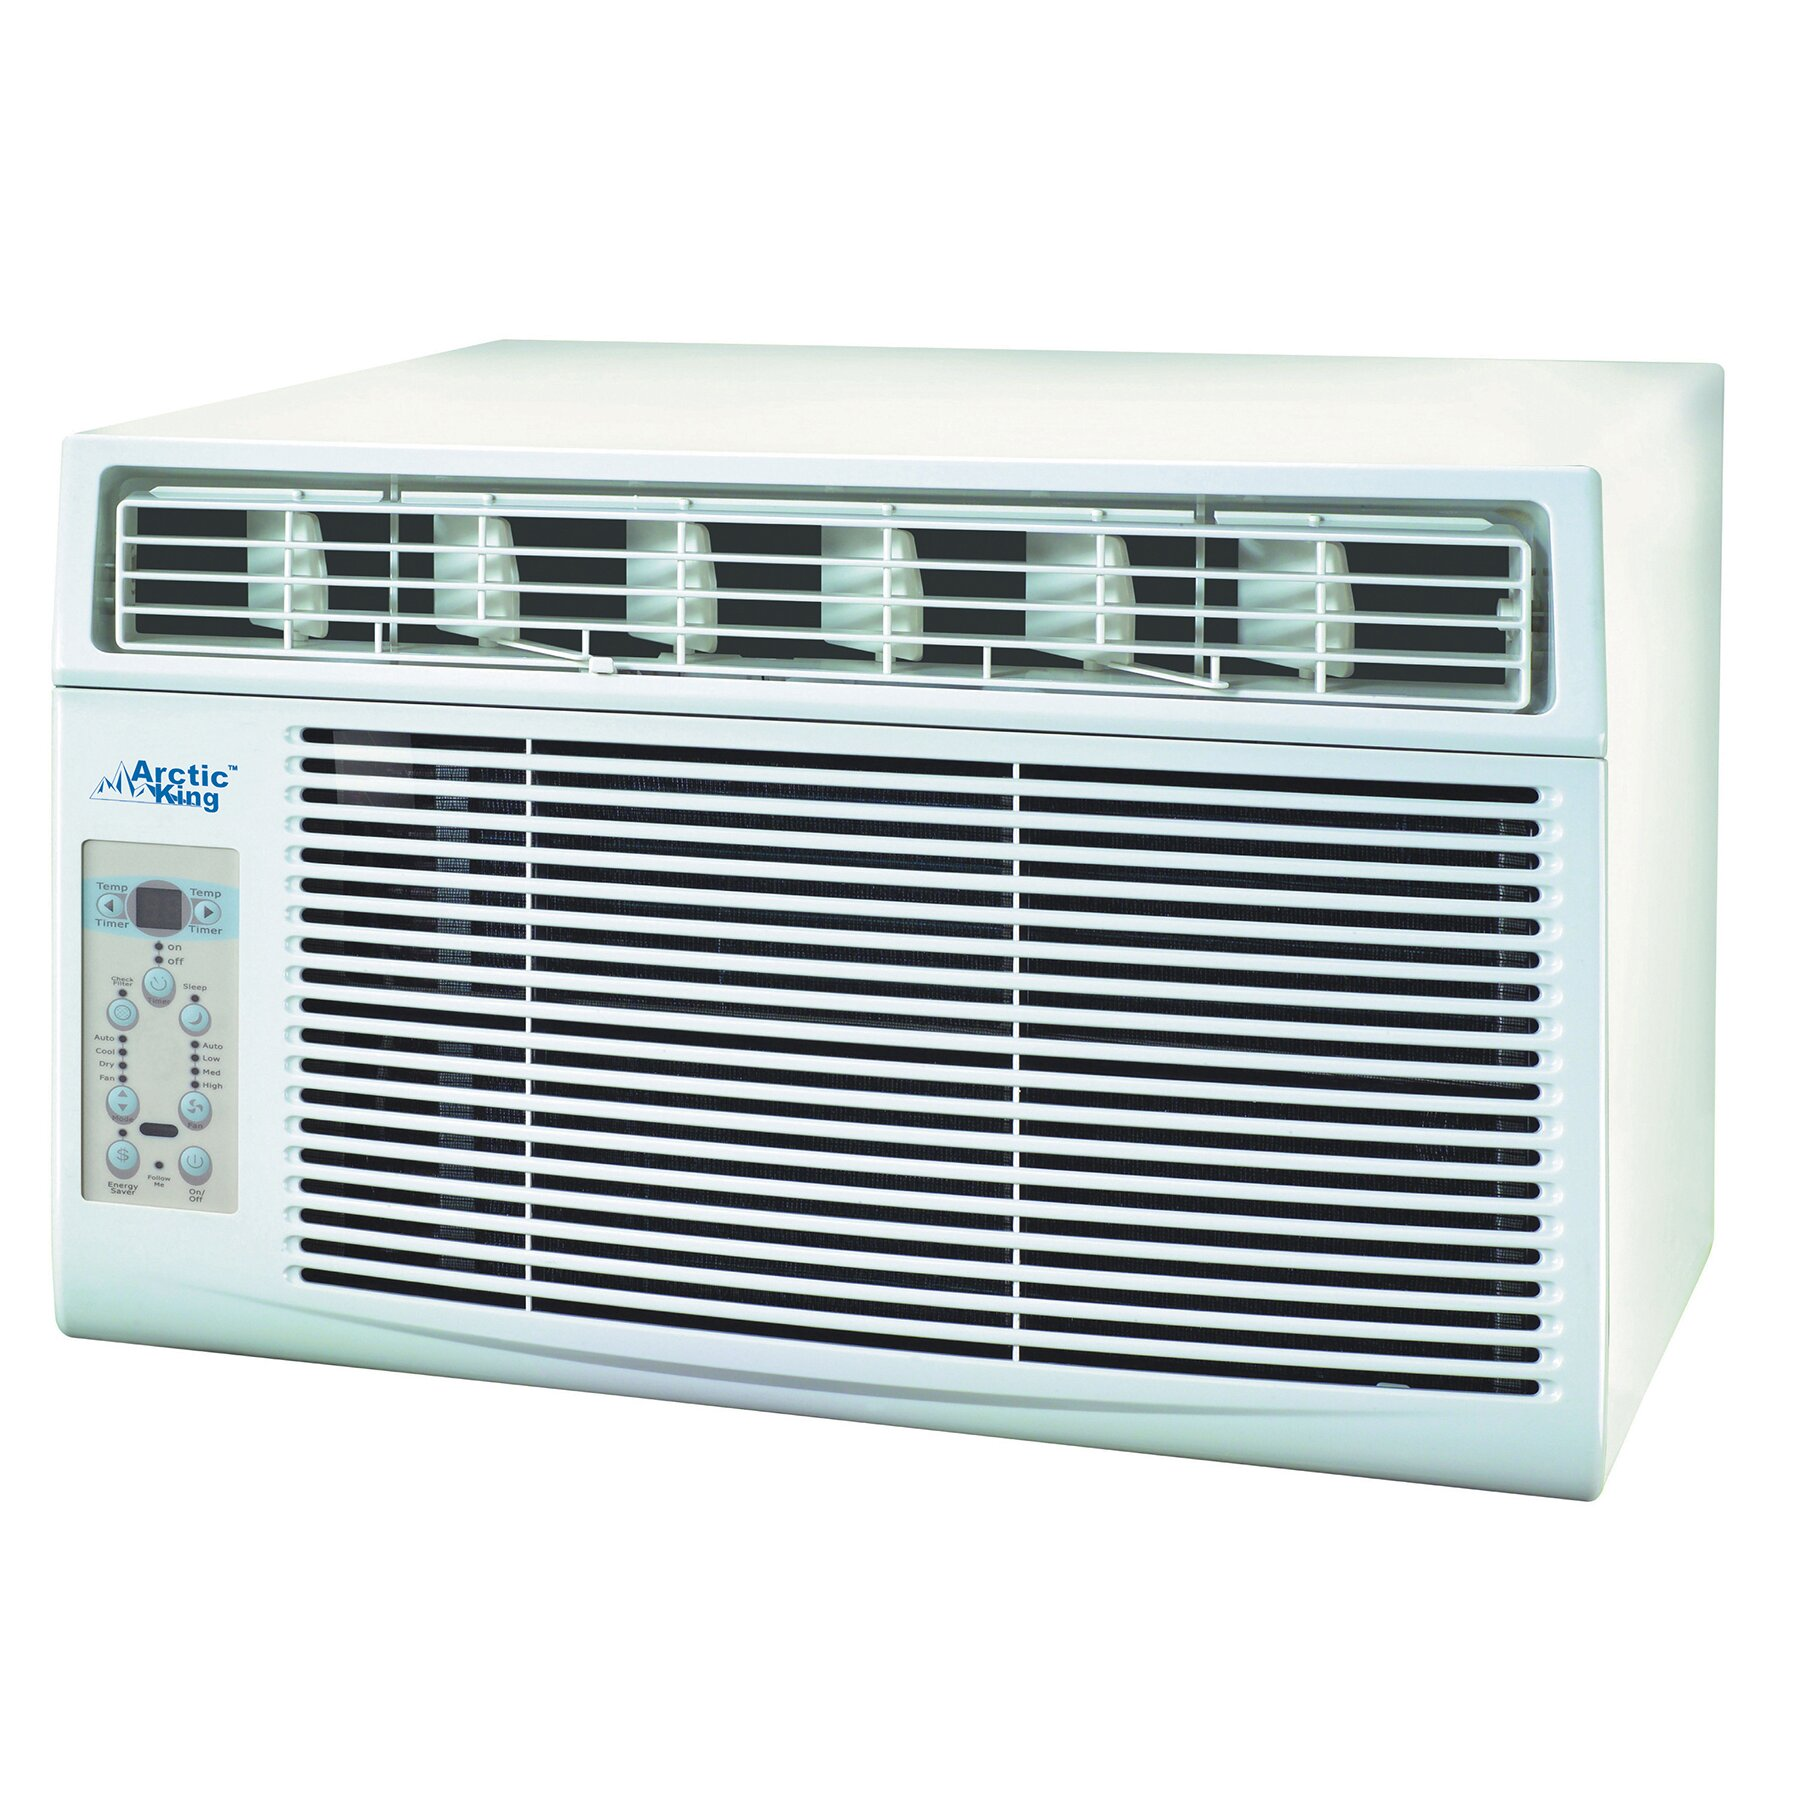 Arctic king 12 000 btu window air conditioner with remote for 12 000 btu window air conditioner with heat